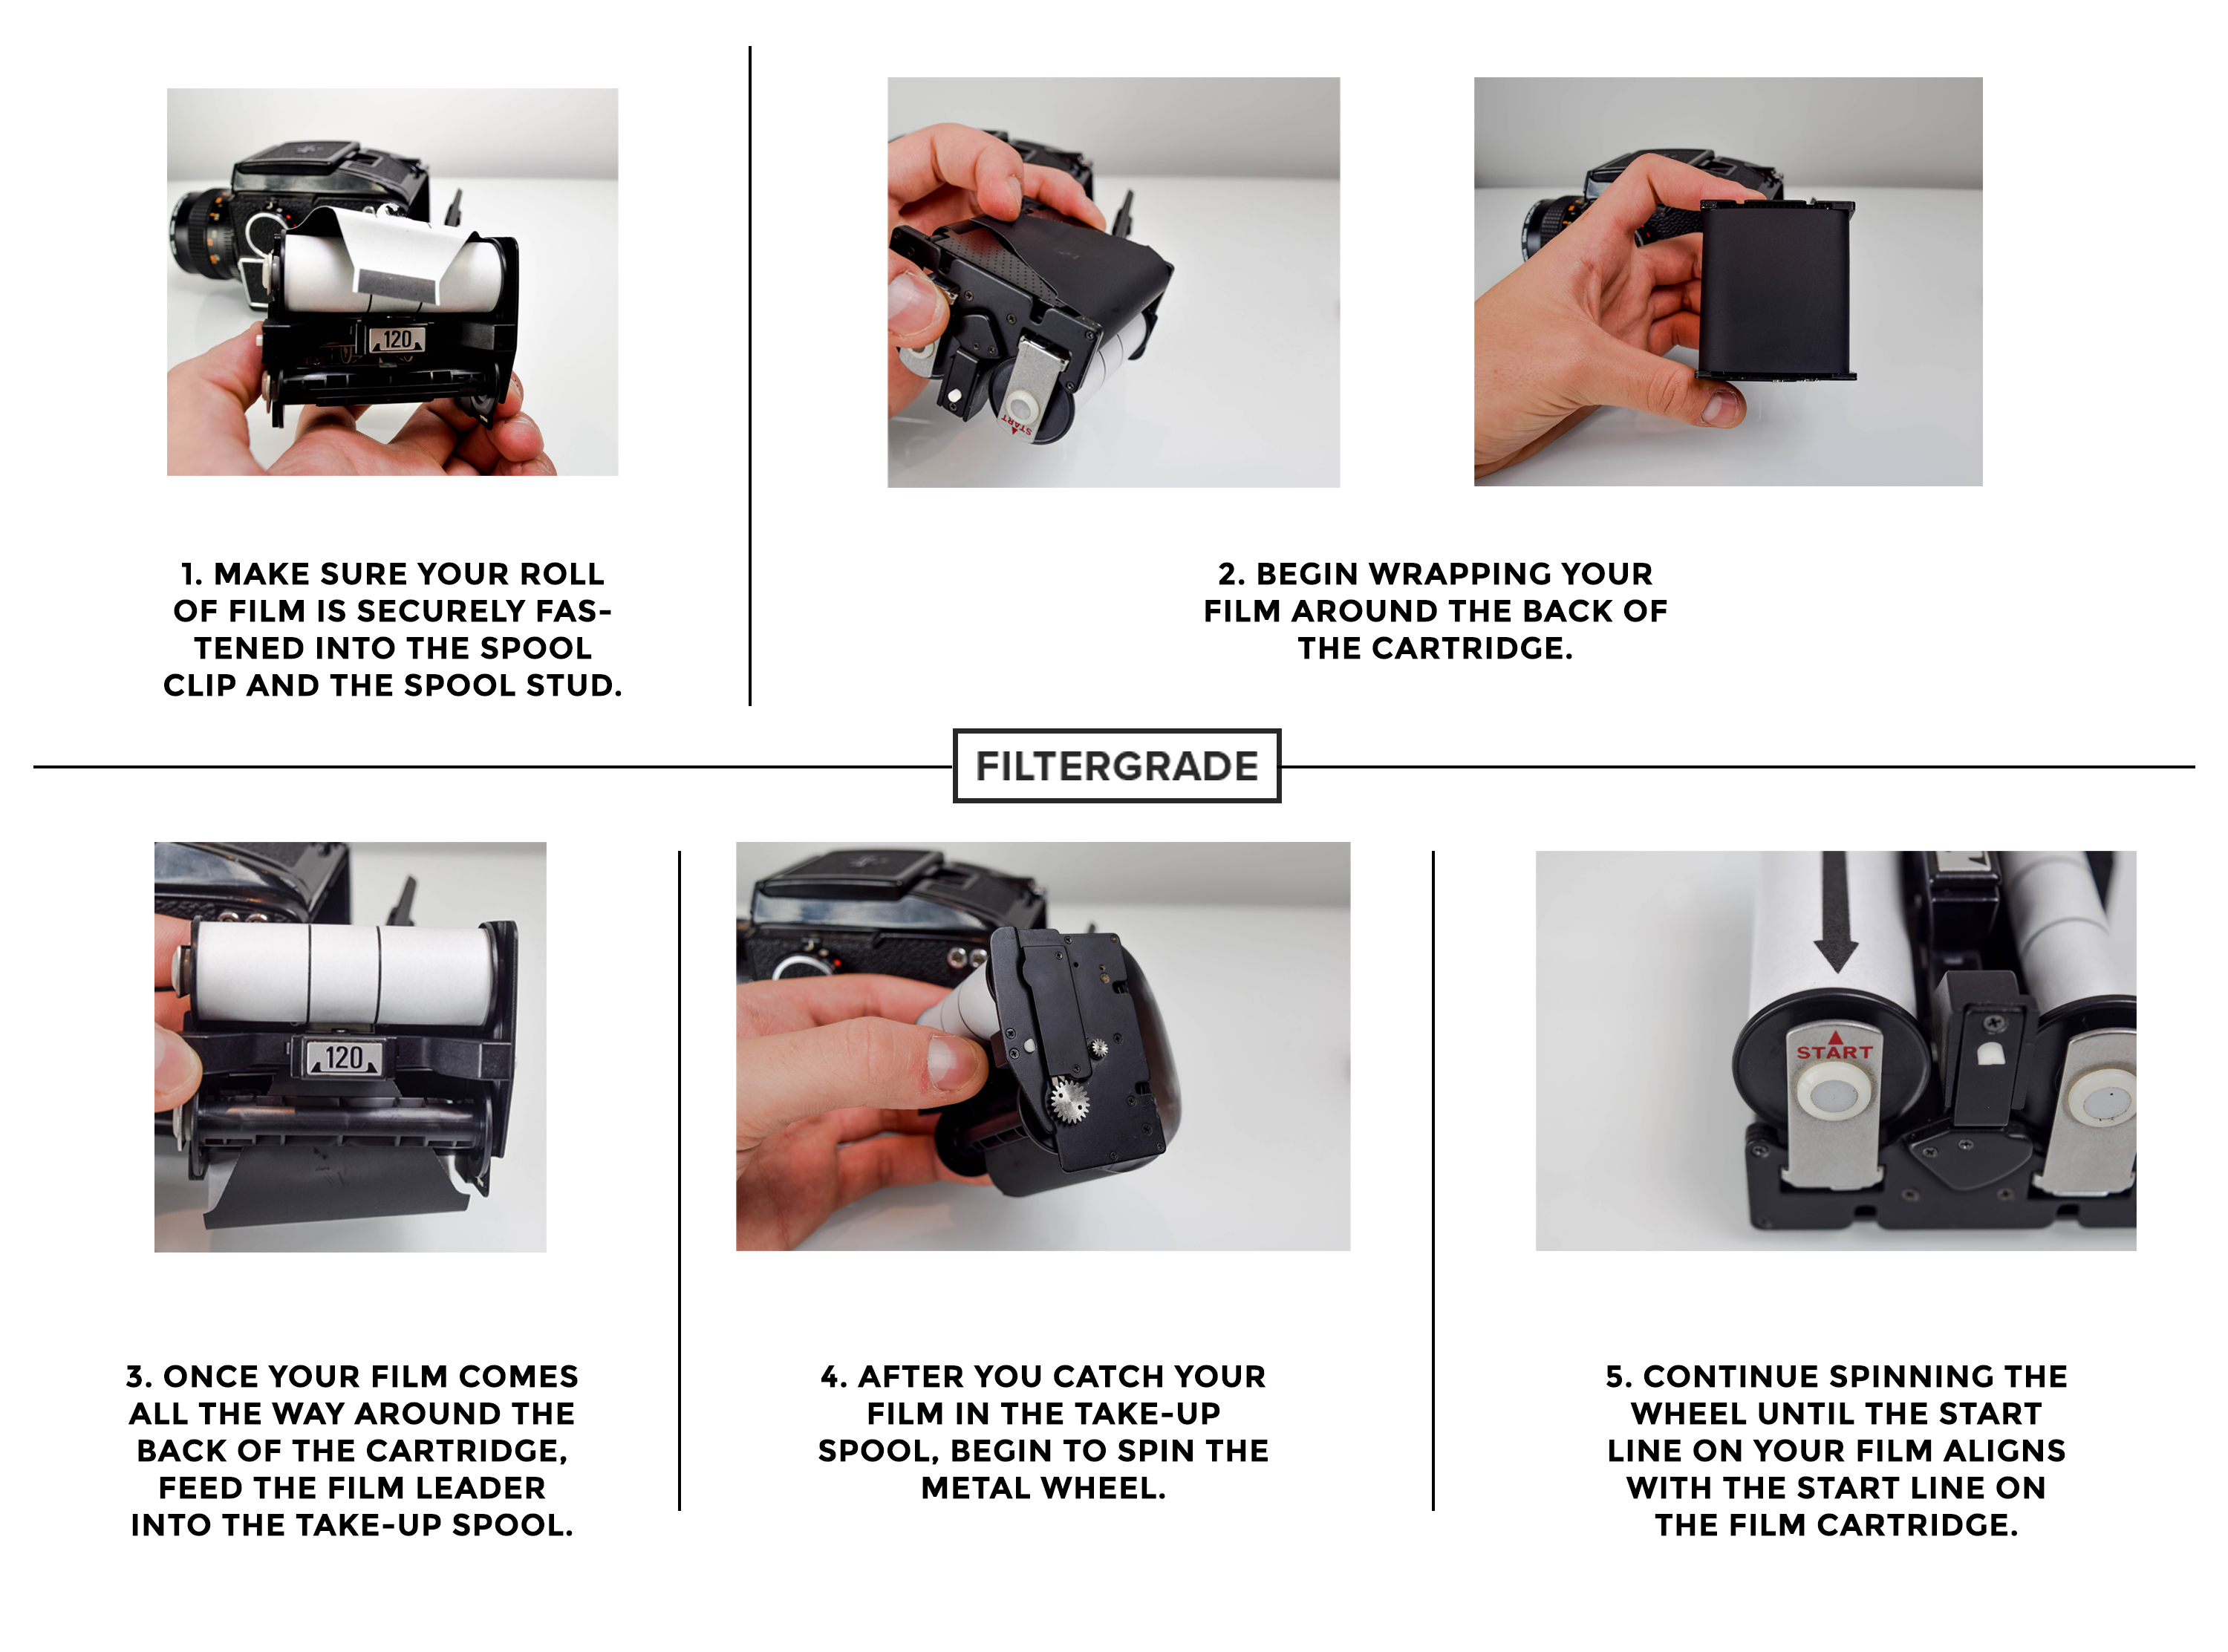 *Demo - How to Load 120mm Film into Your Mamiya M645 - Film Photography - Filtergrade